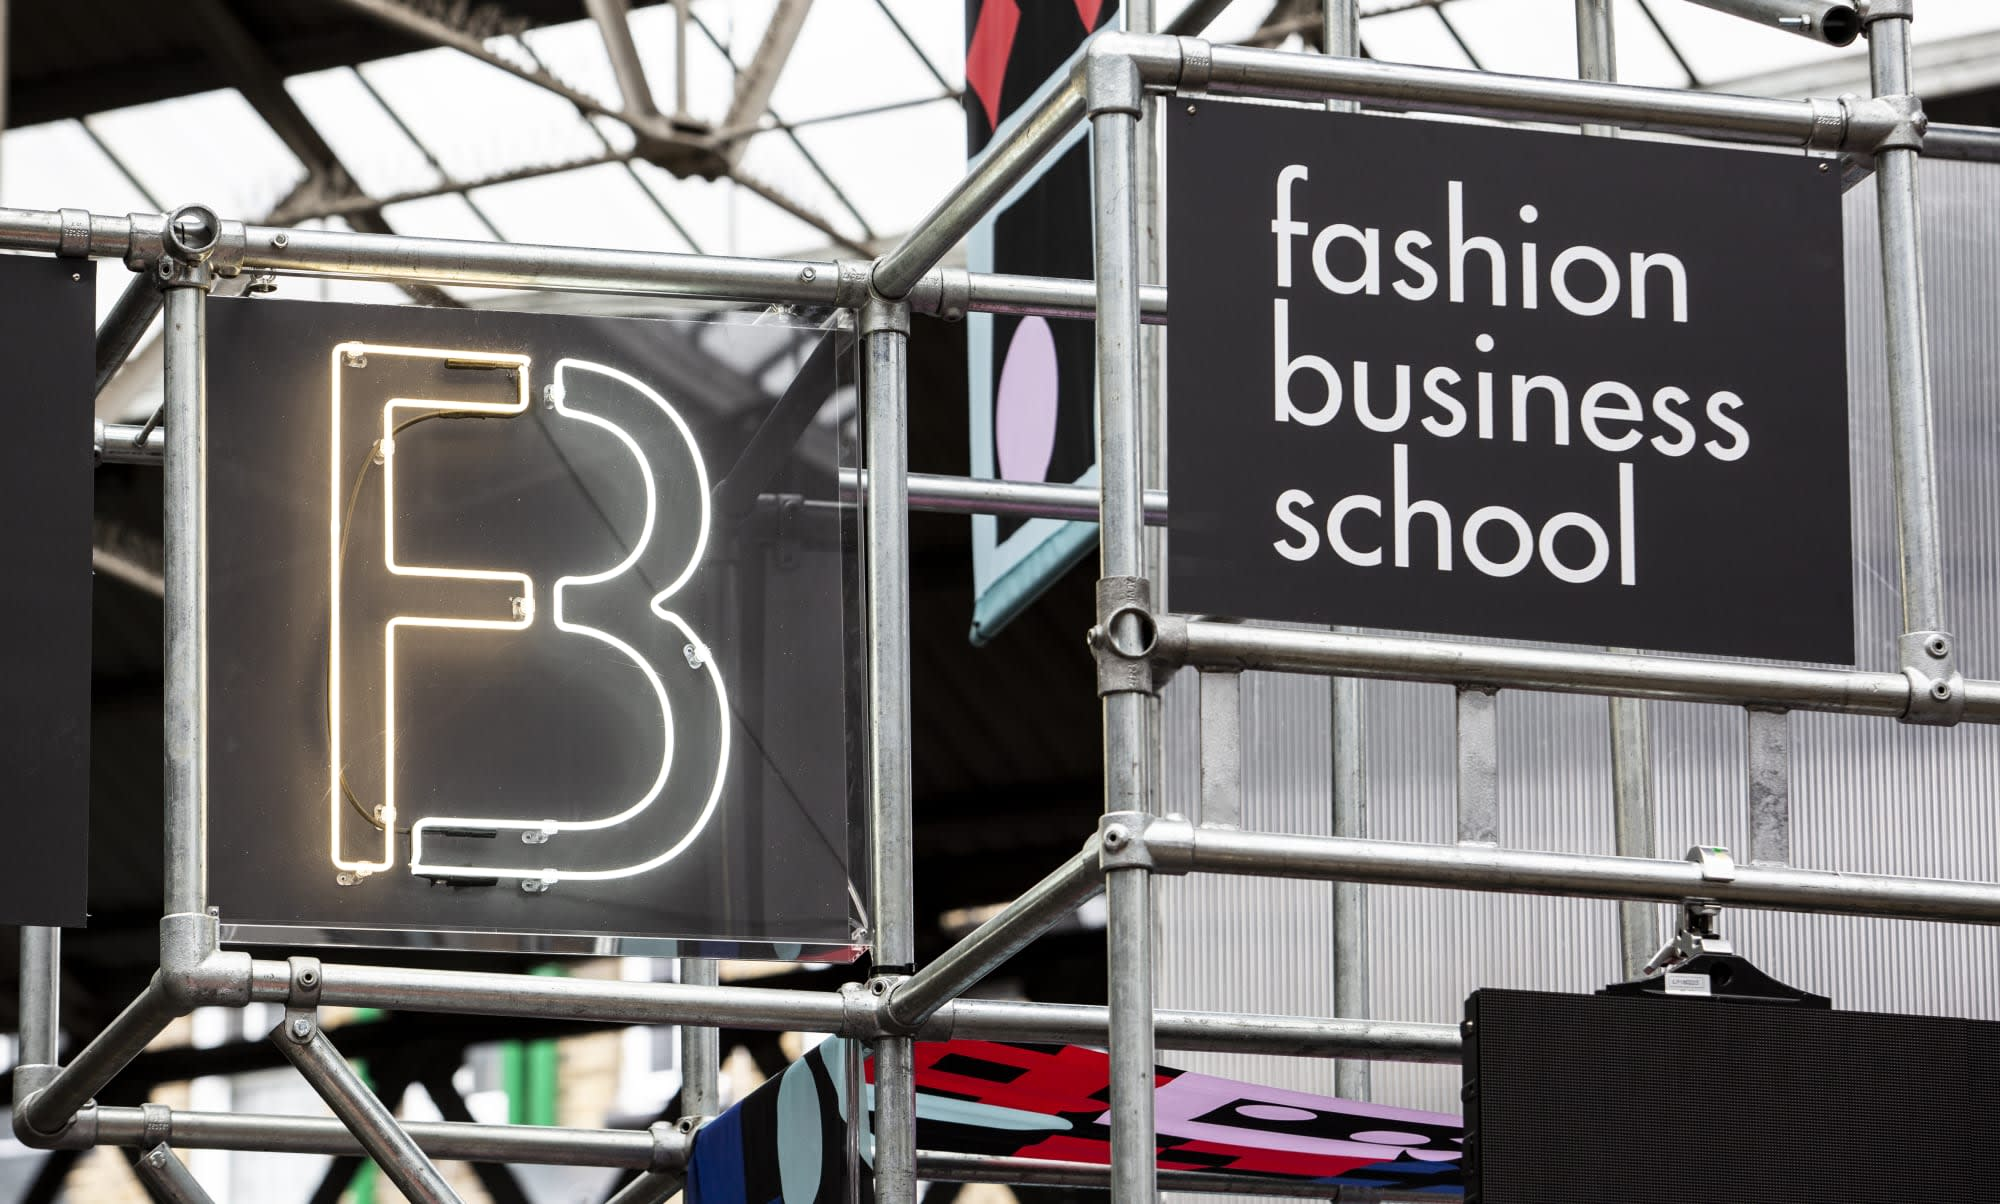 Big Welcome: Meet your Dean at LCF - Fashion Business School